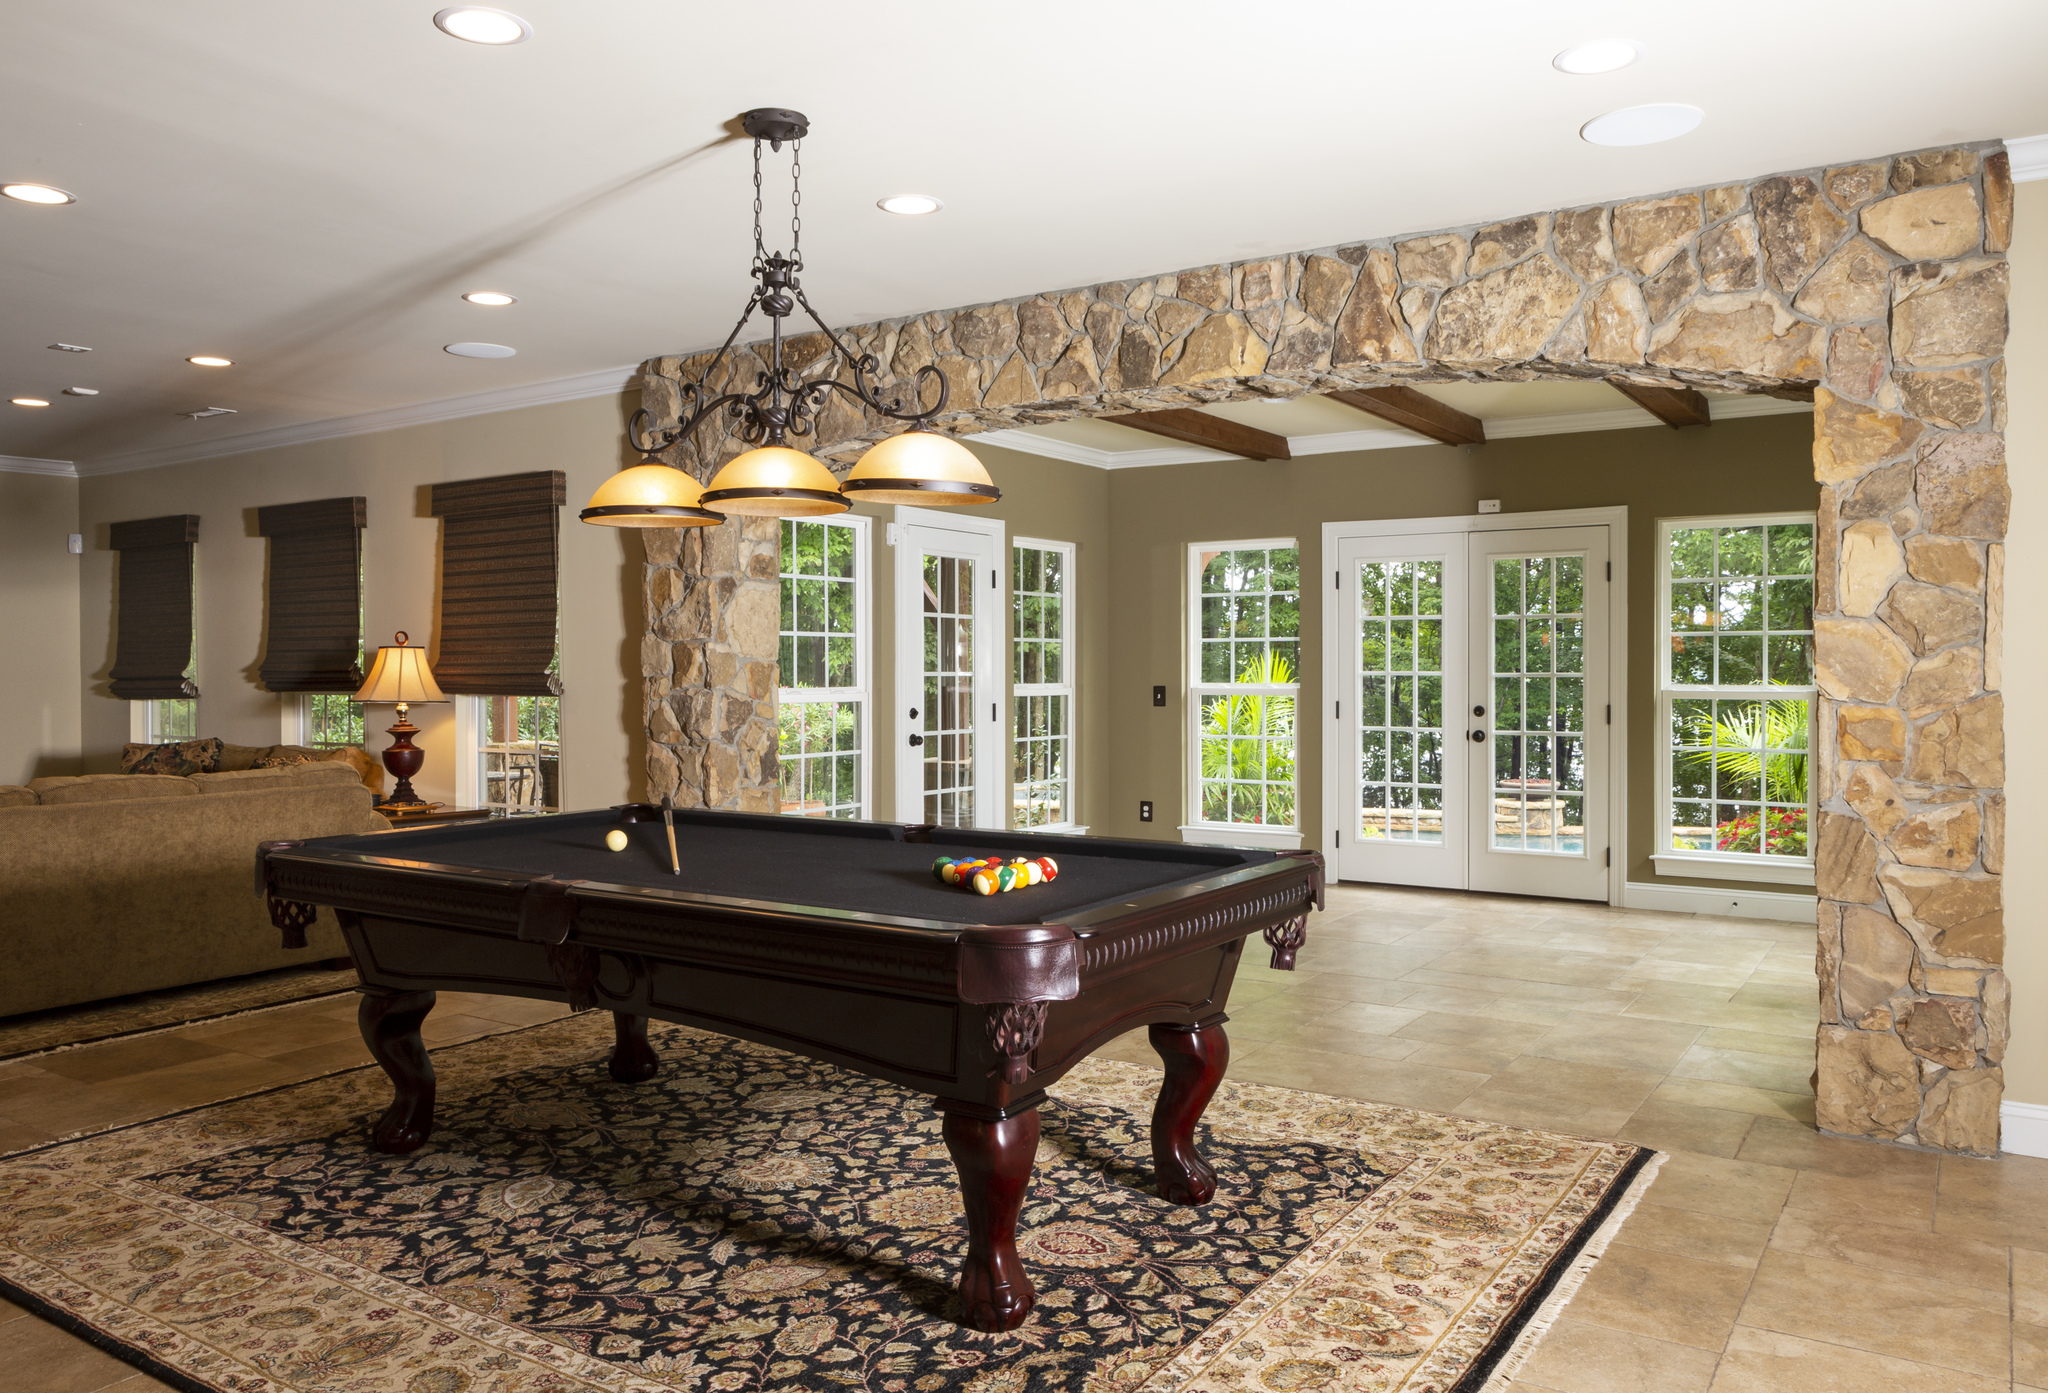 game room with pool table custom lighht fixture